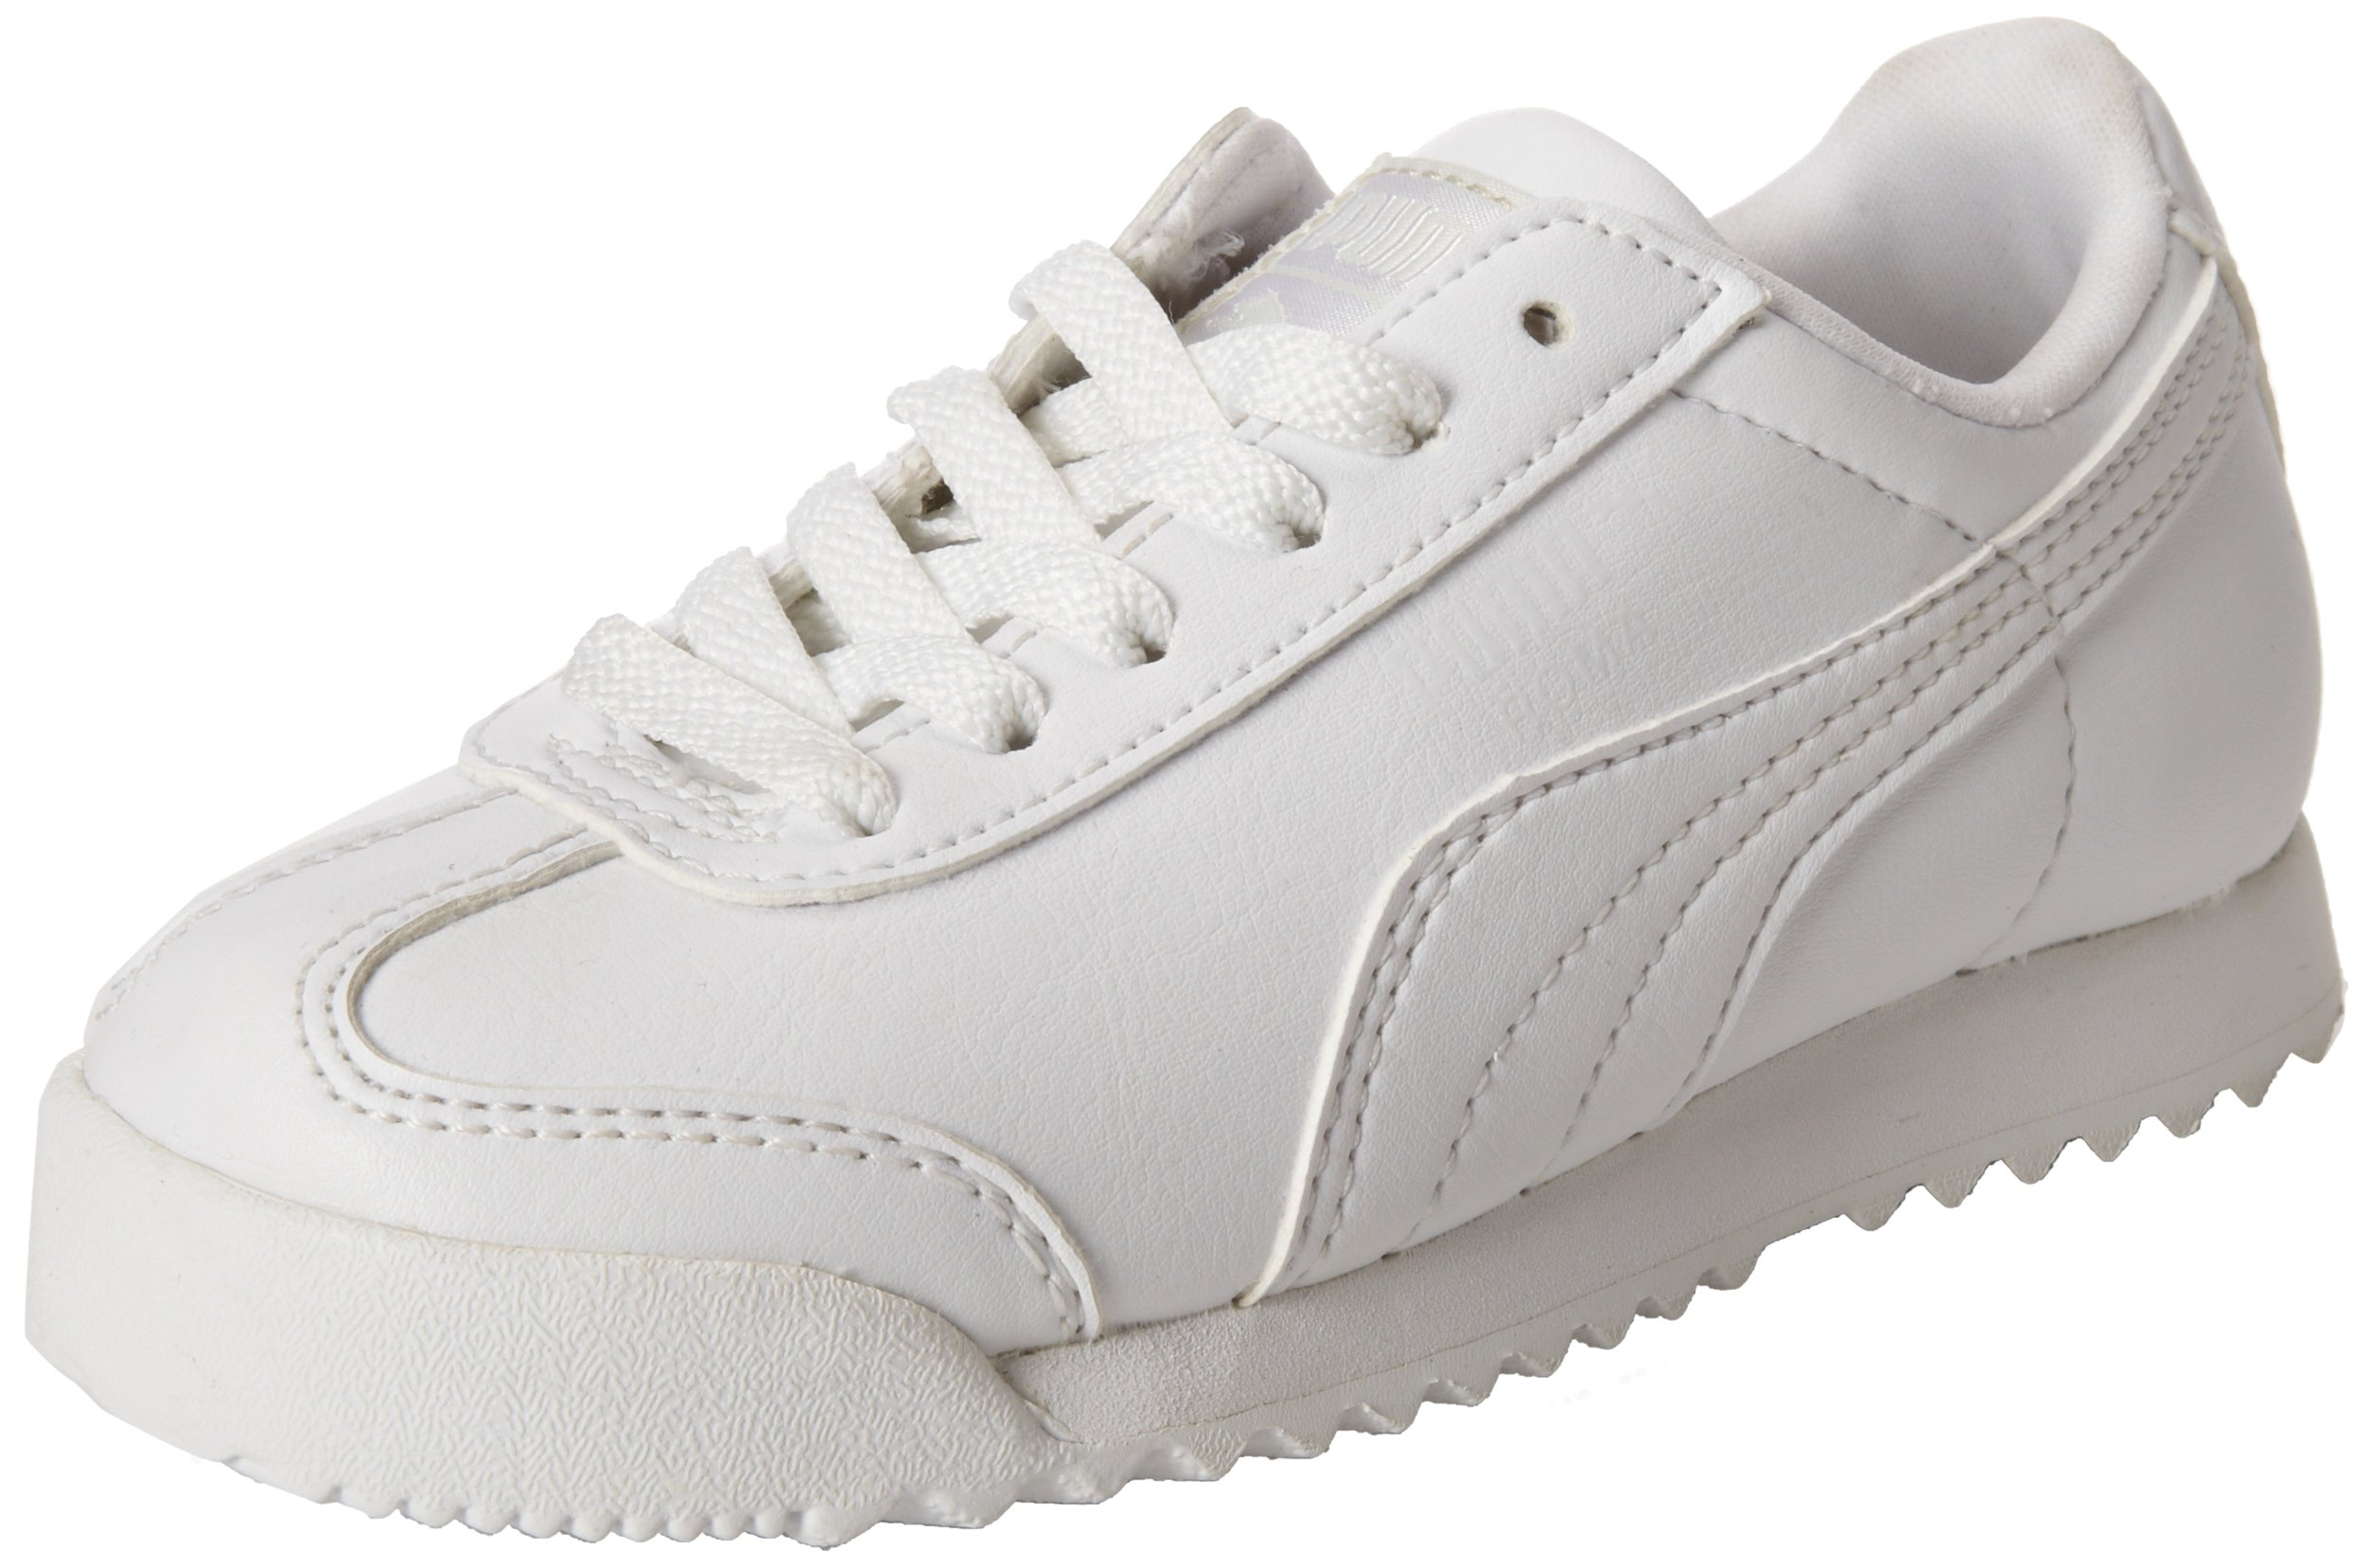 PUMA Roma Basic Kids Sneaker (Toddler/Little Kid/Big Kid) , White/Light Gray, 1.5 M US Little Kid